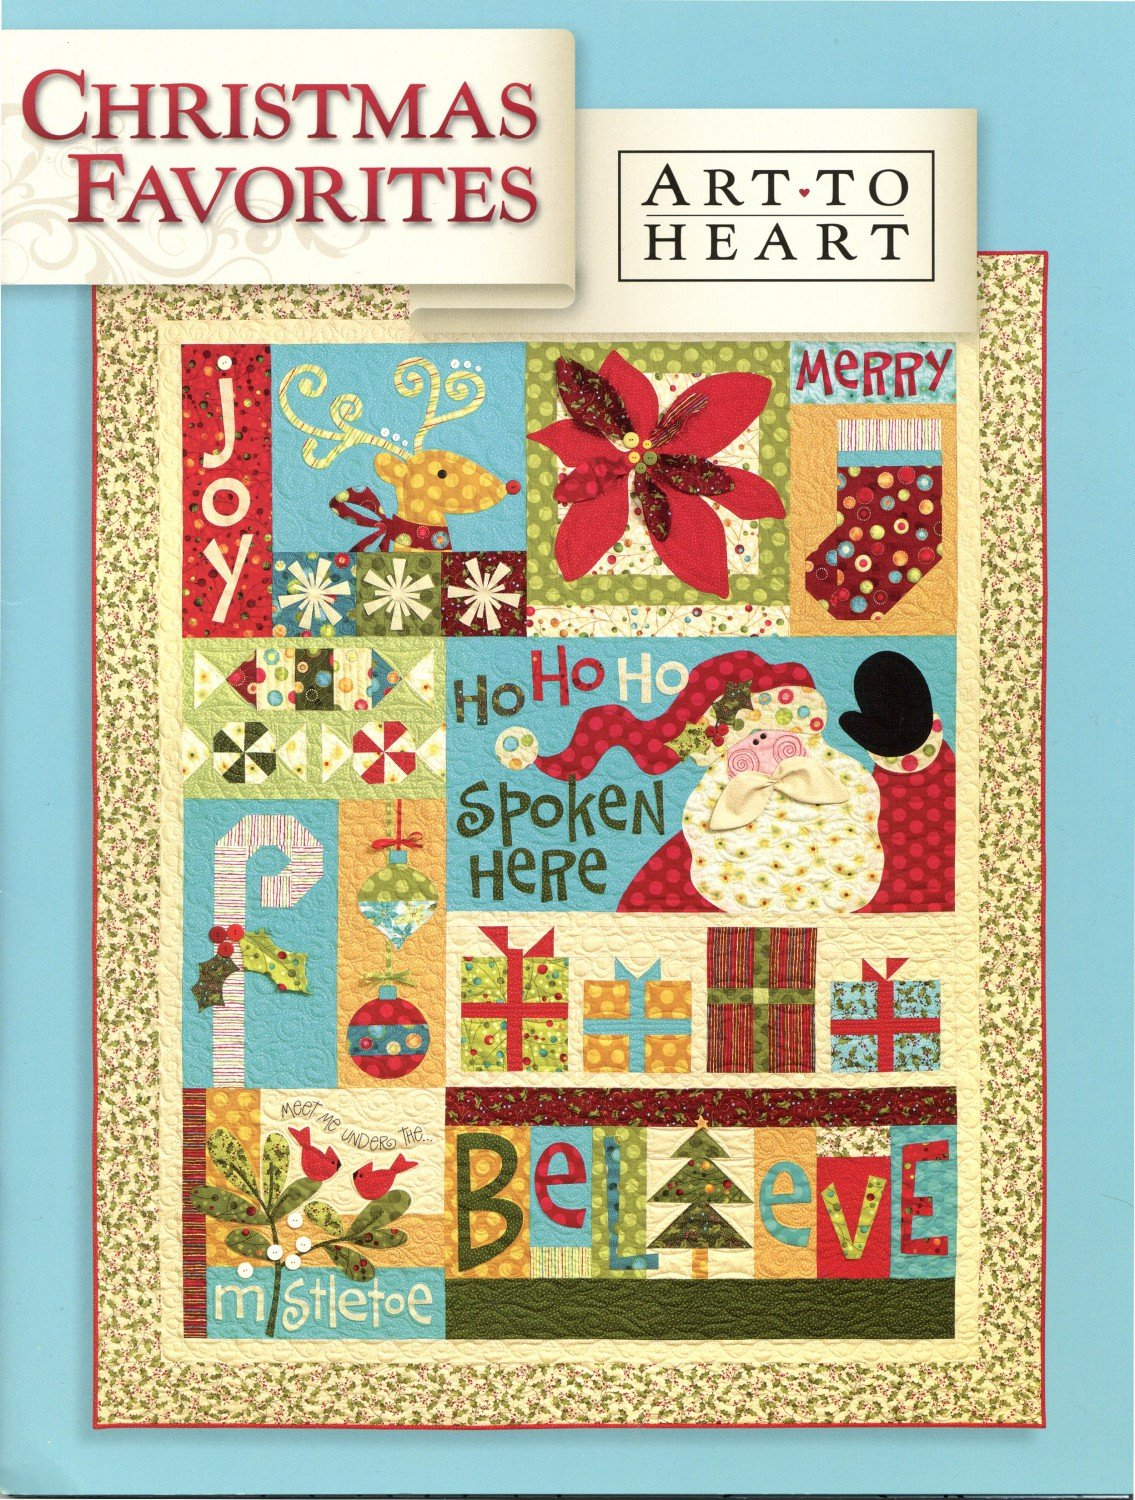 Art to Heart - Nancy Halvorsen - Christmas Favorites Book